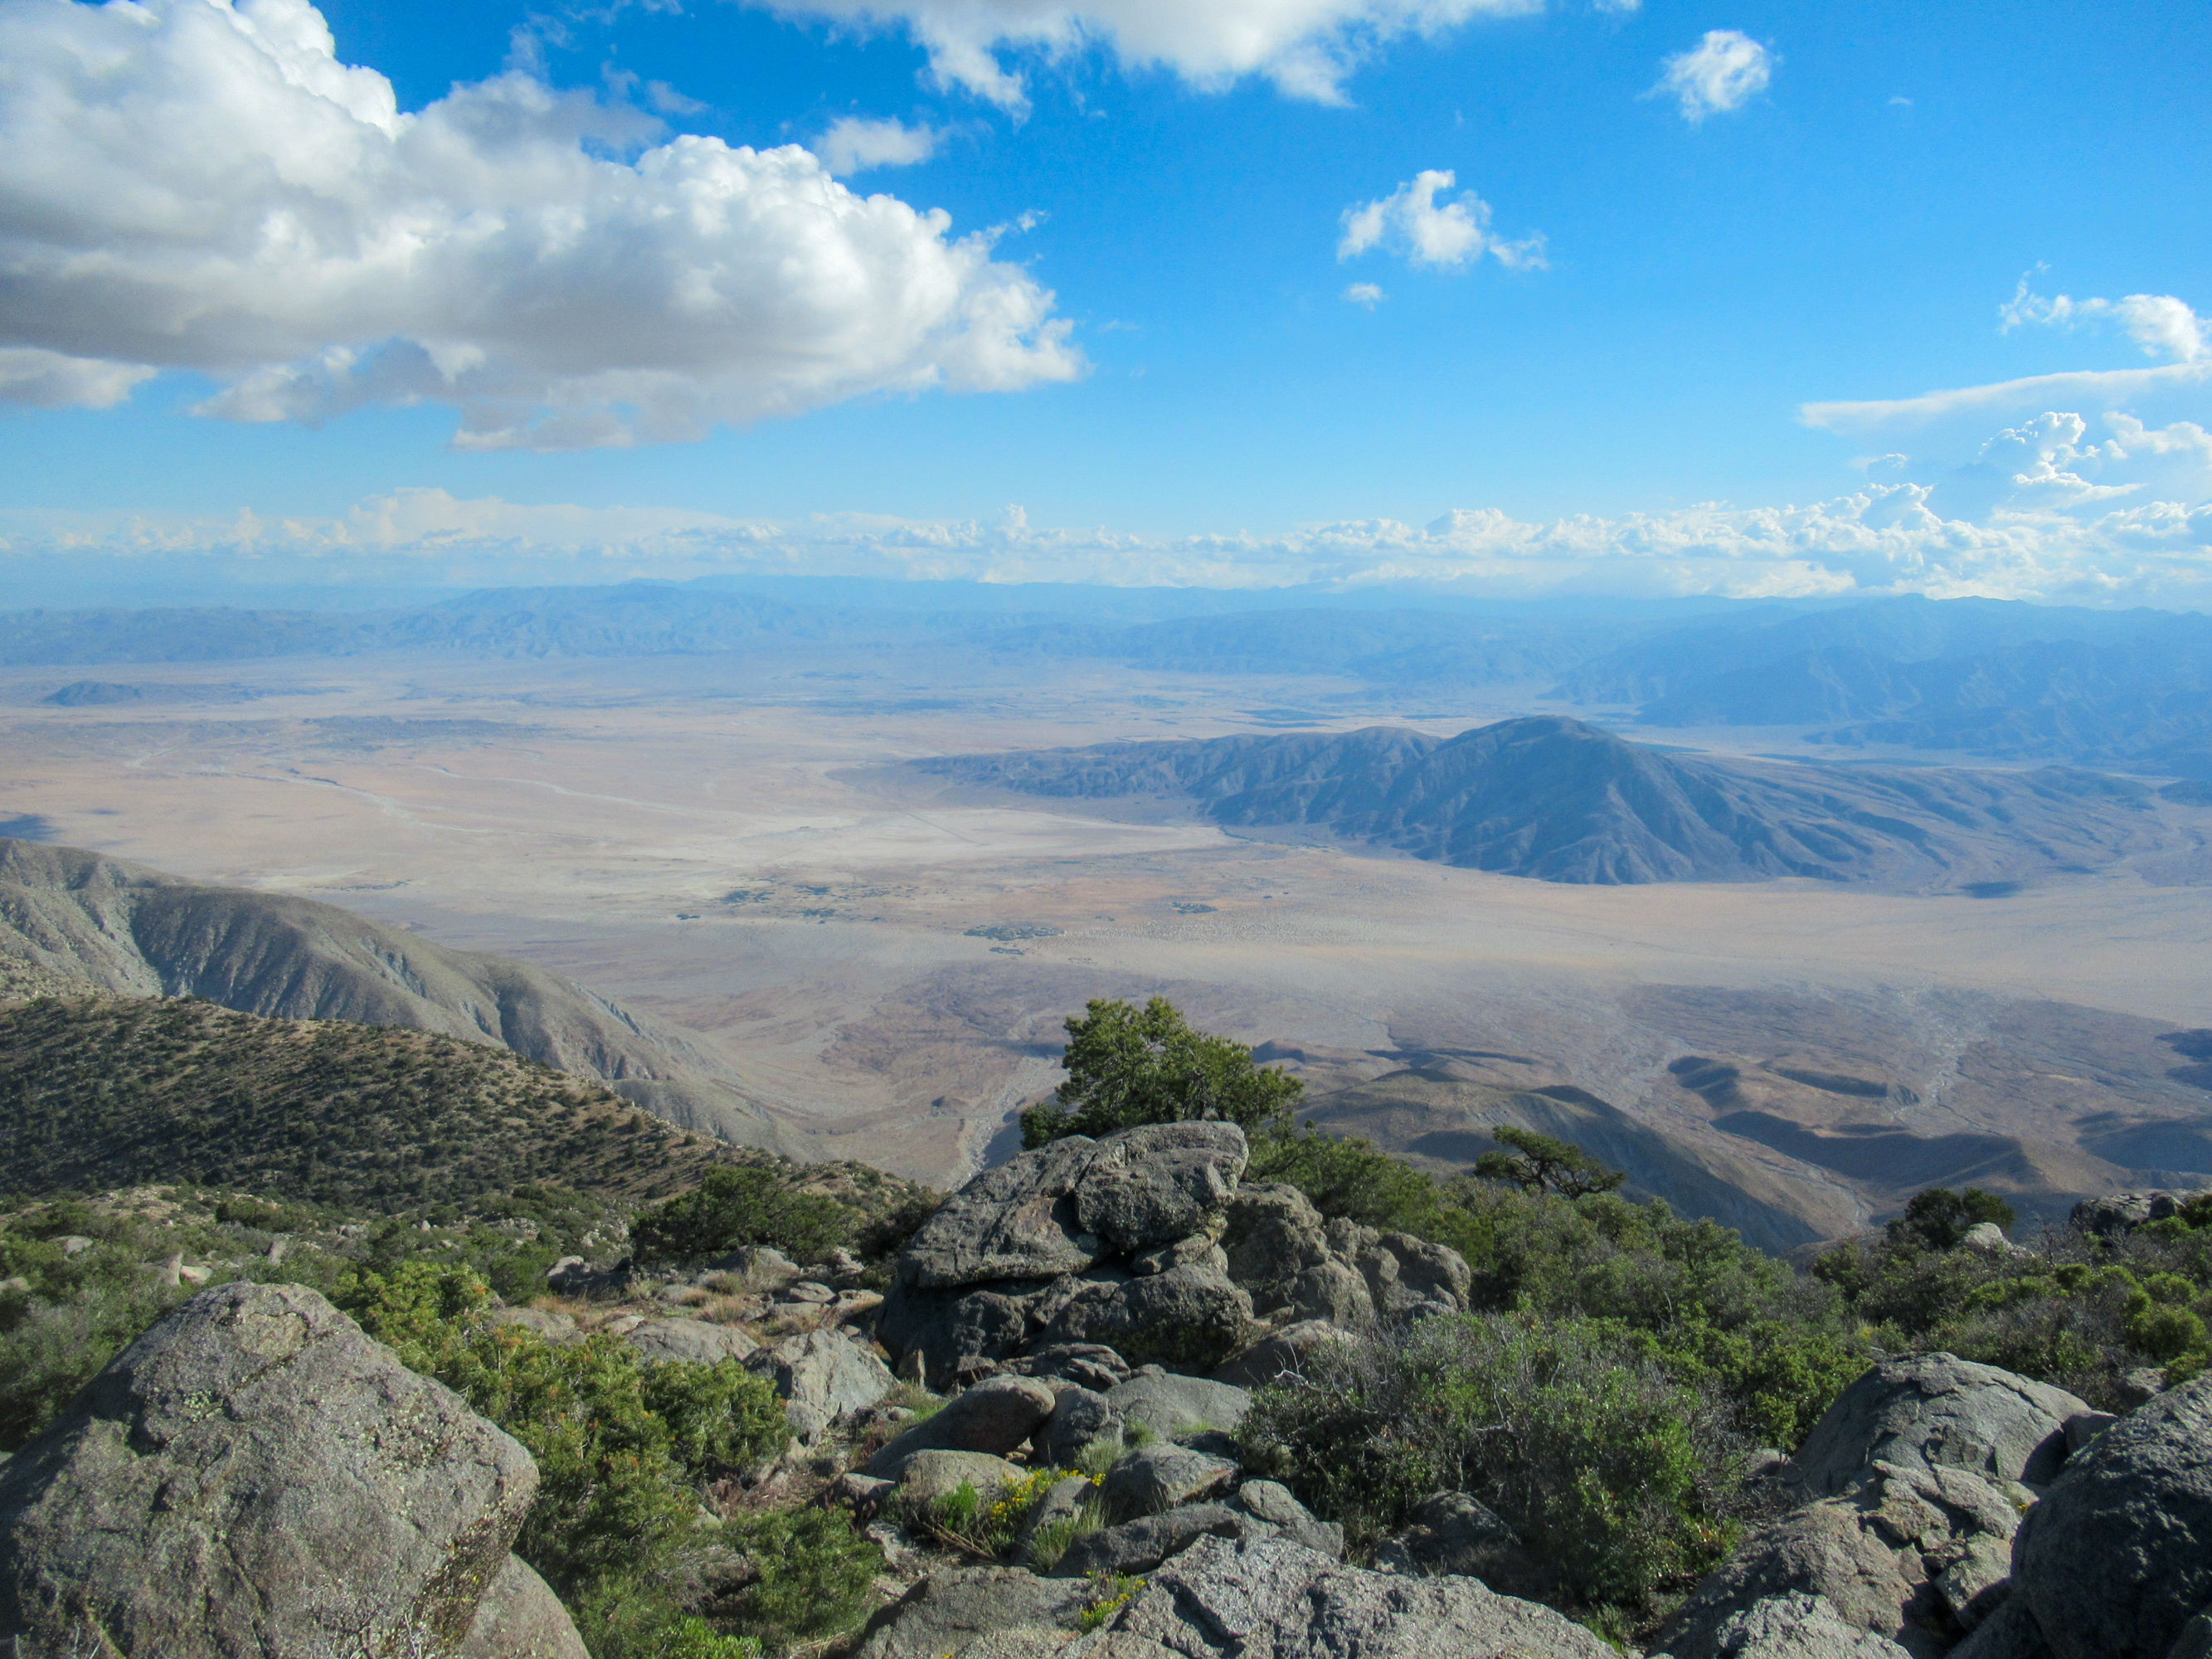 View of Clark Dry Lake from atop Rabbit Peak.